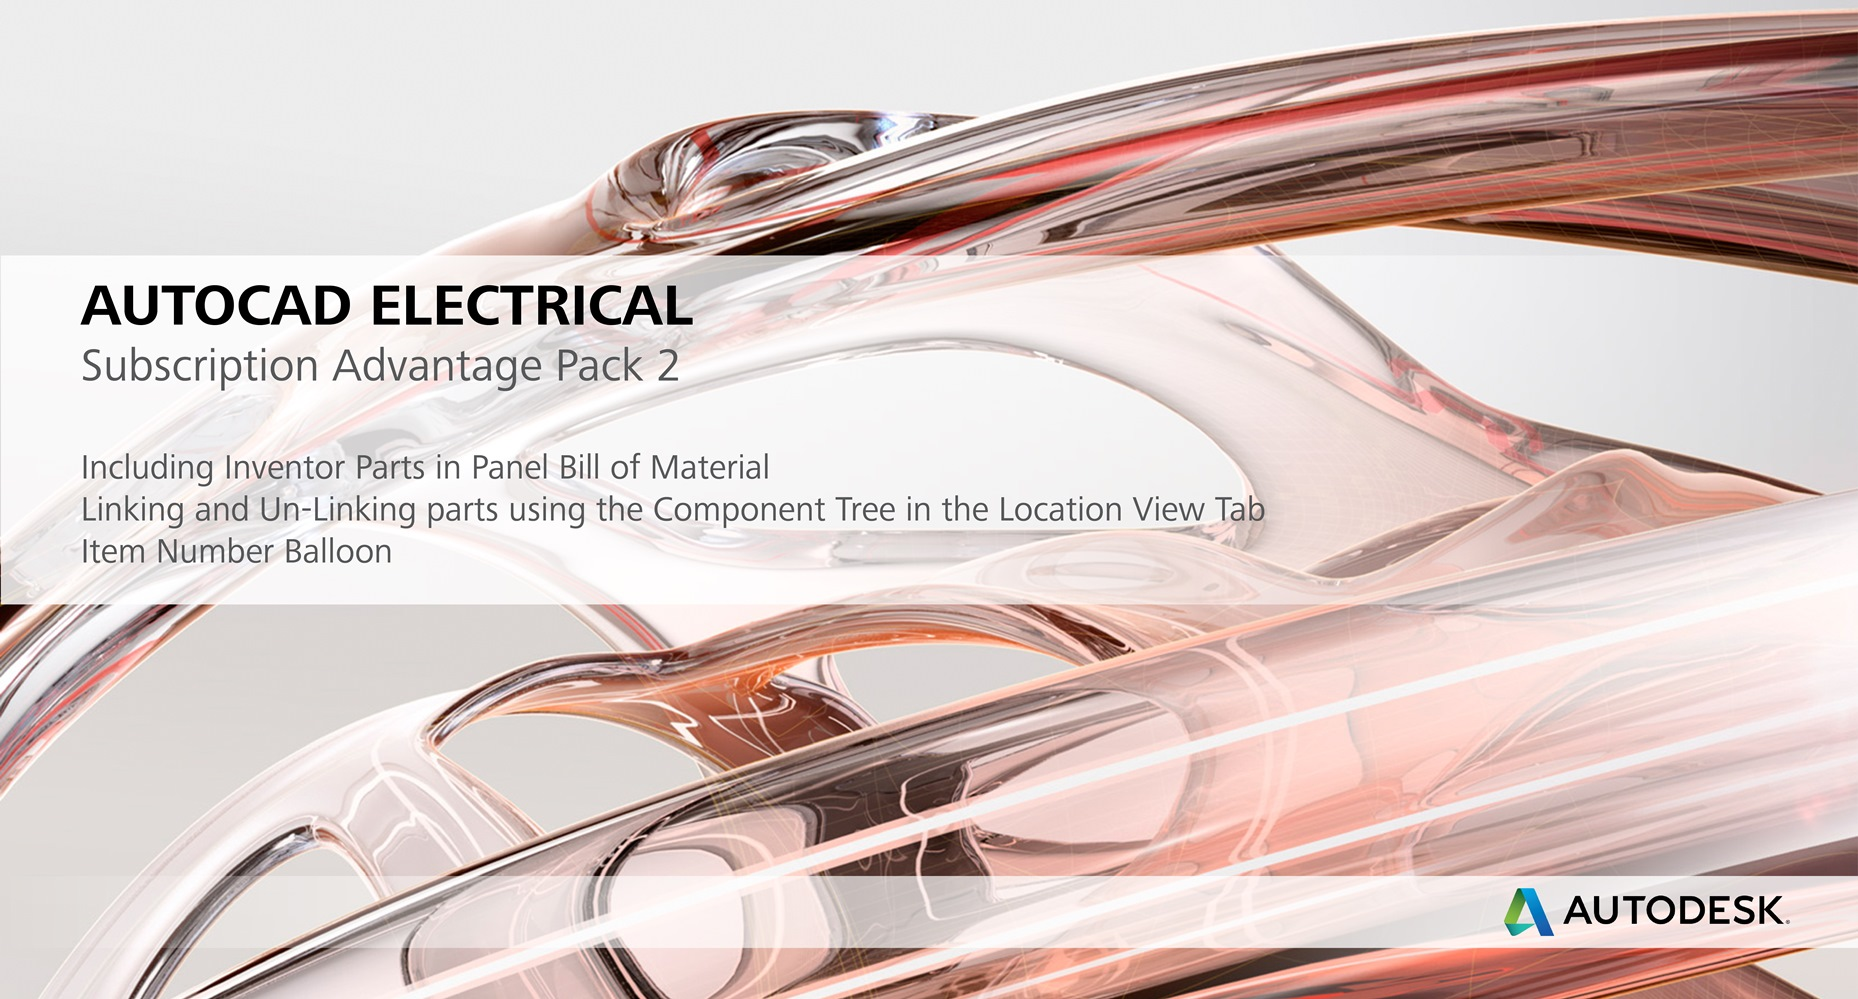 hight resolution of autocad electrical subscription advantage pack 2 1